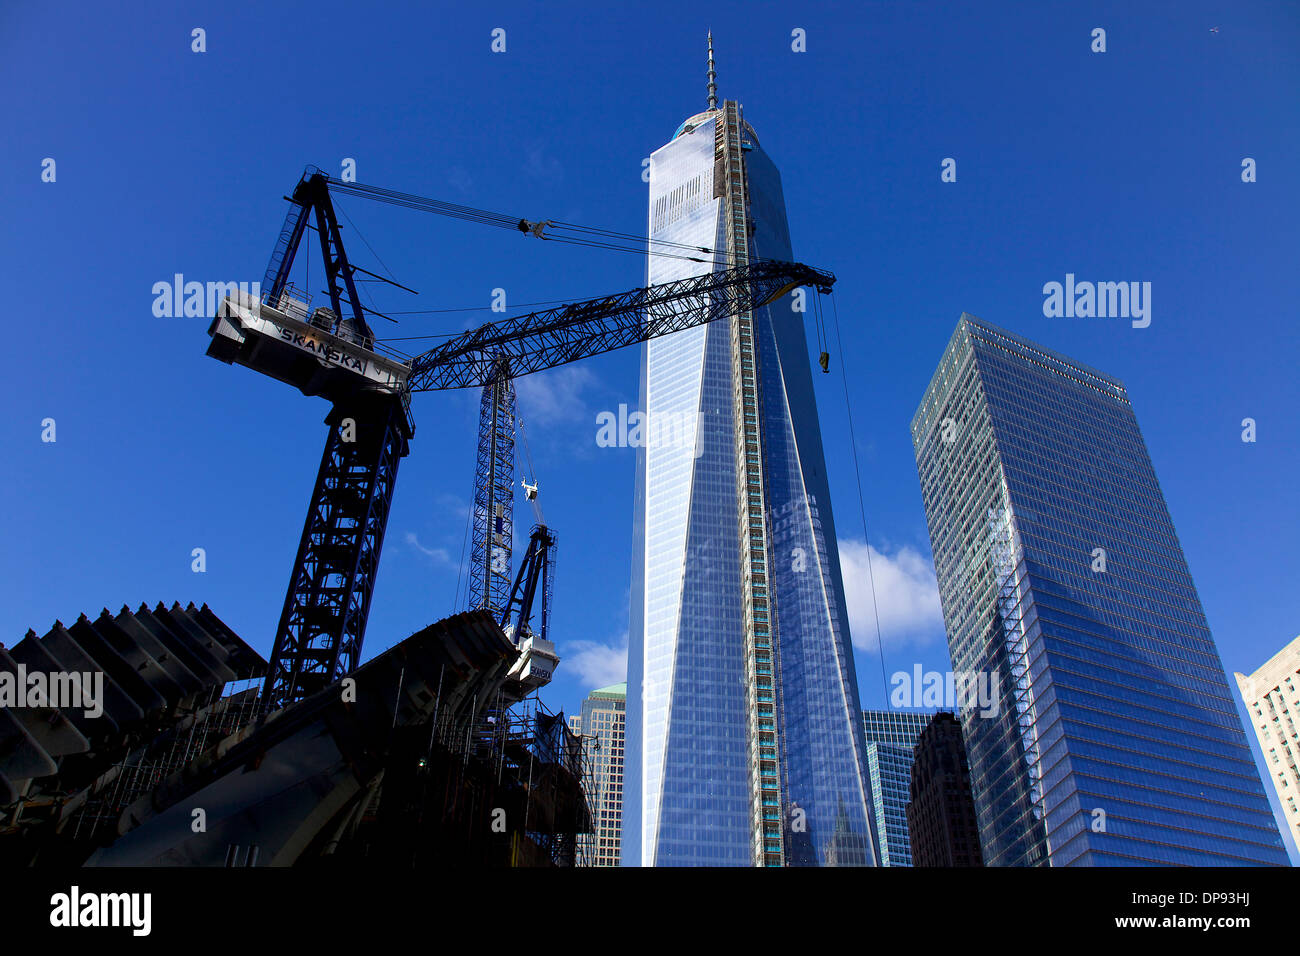 Freedom Tower Construction Site Stock Photos & Freedom ...